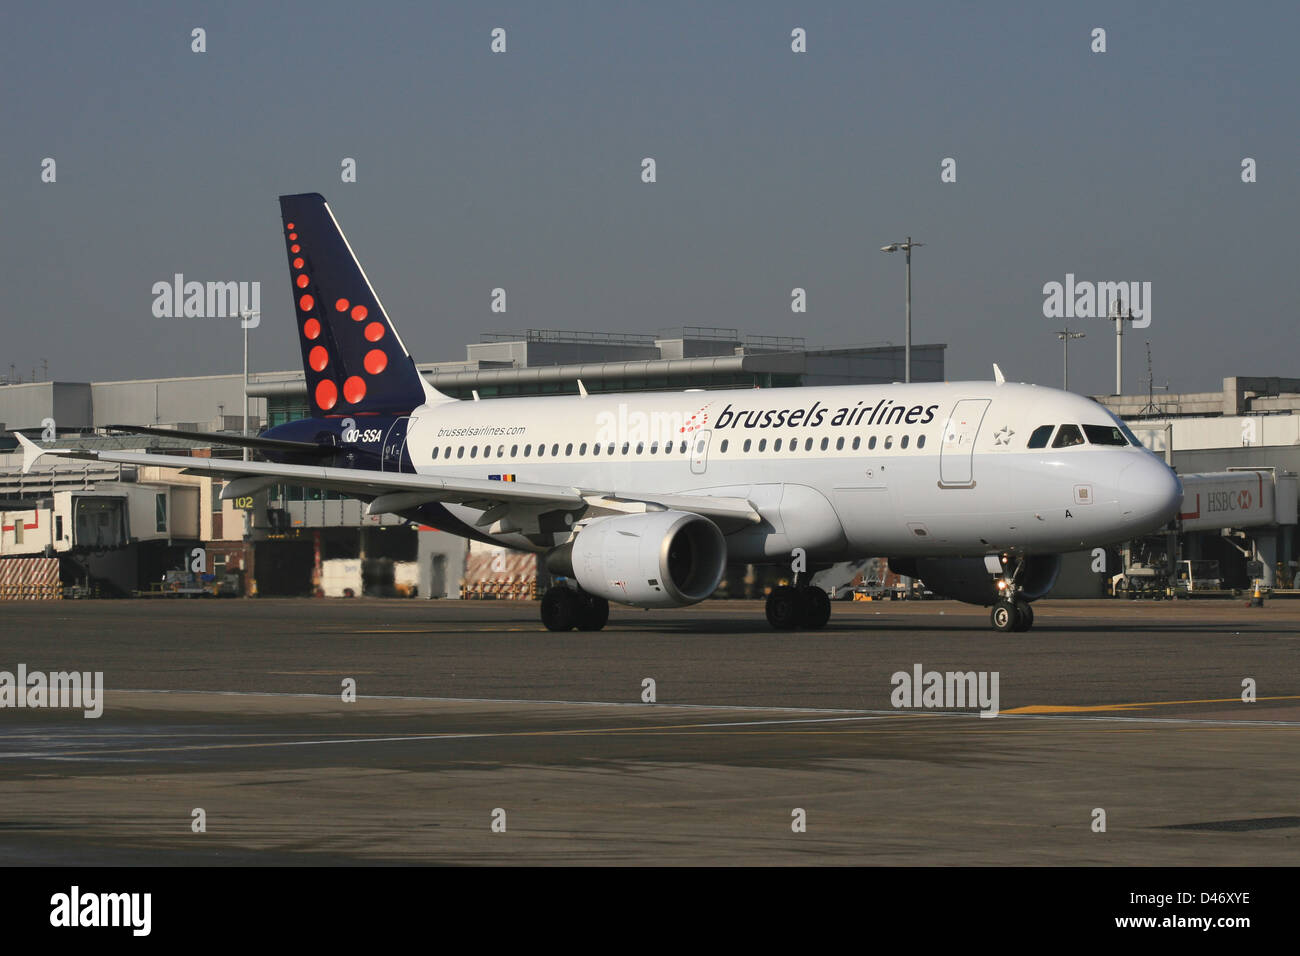 BRUSSELS AIRLINES formerly known as sabena airbus a319 - Stock Image